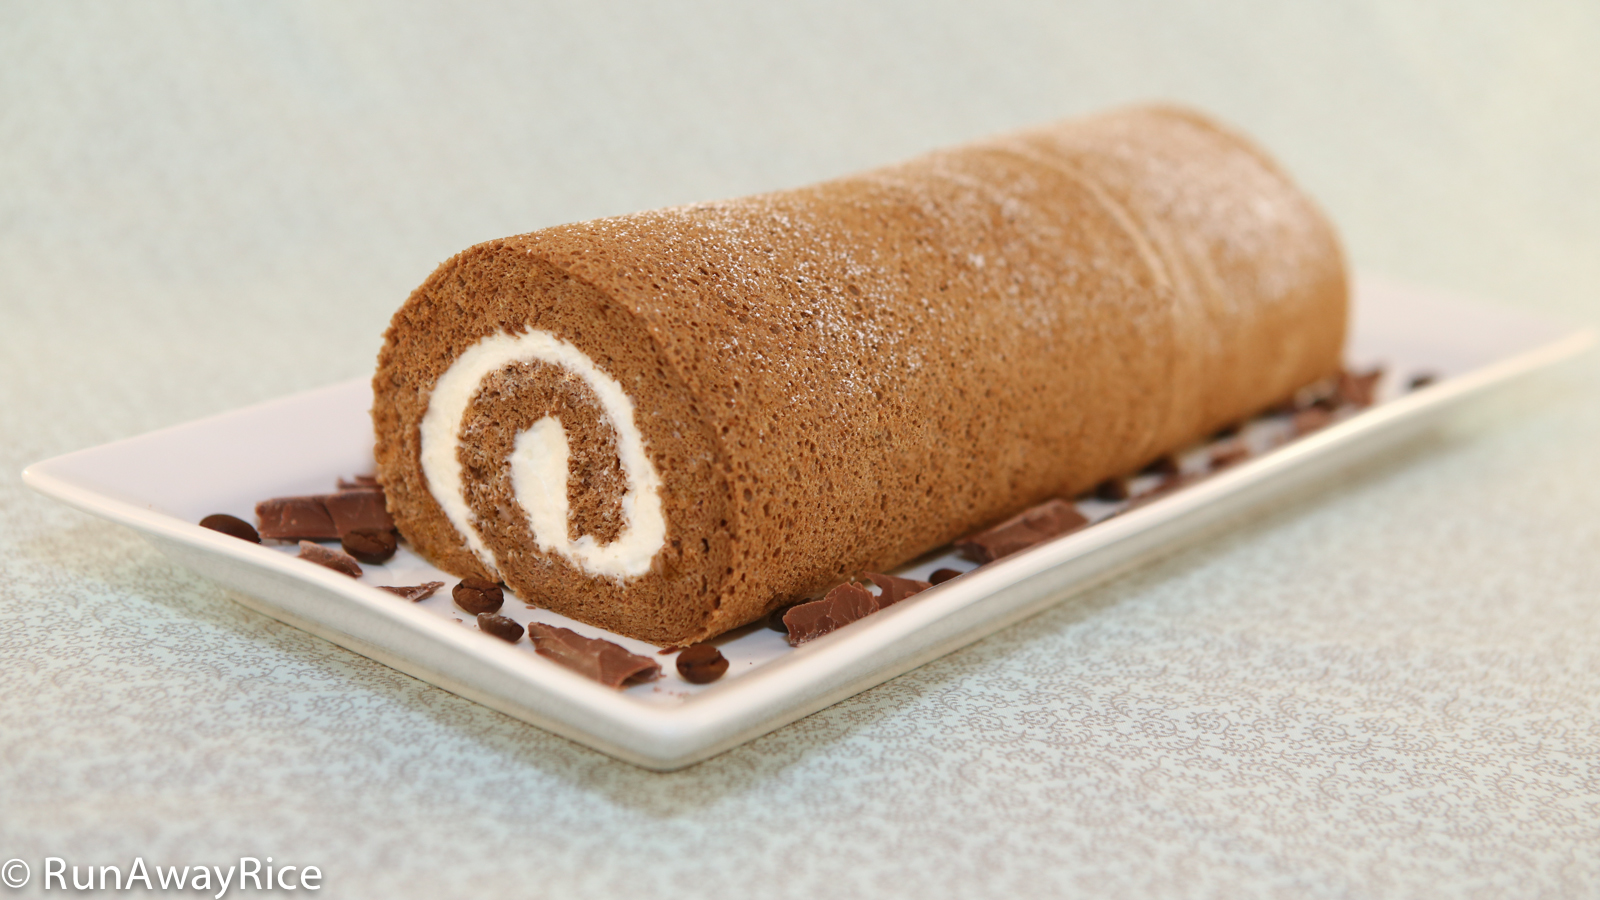 Chocolate Sponge Cake Jelly Roll